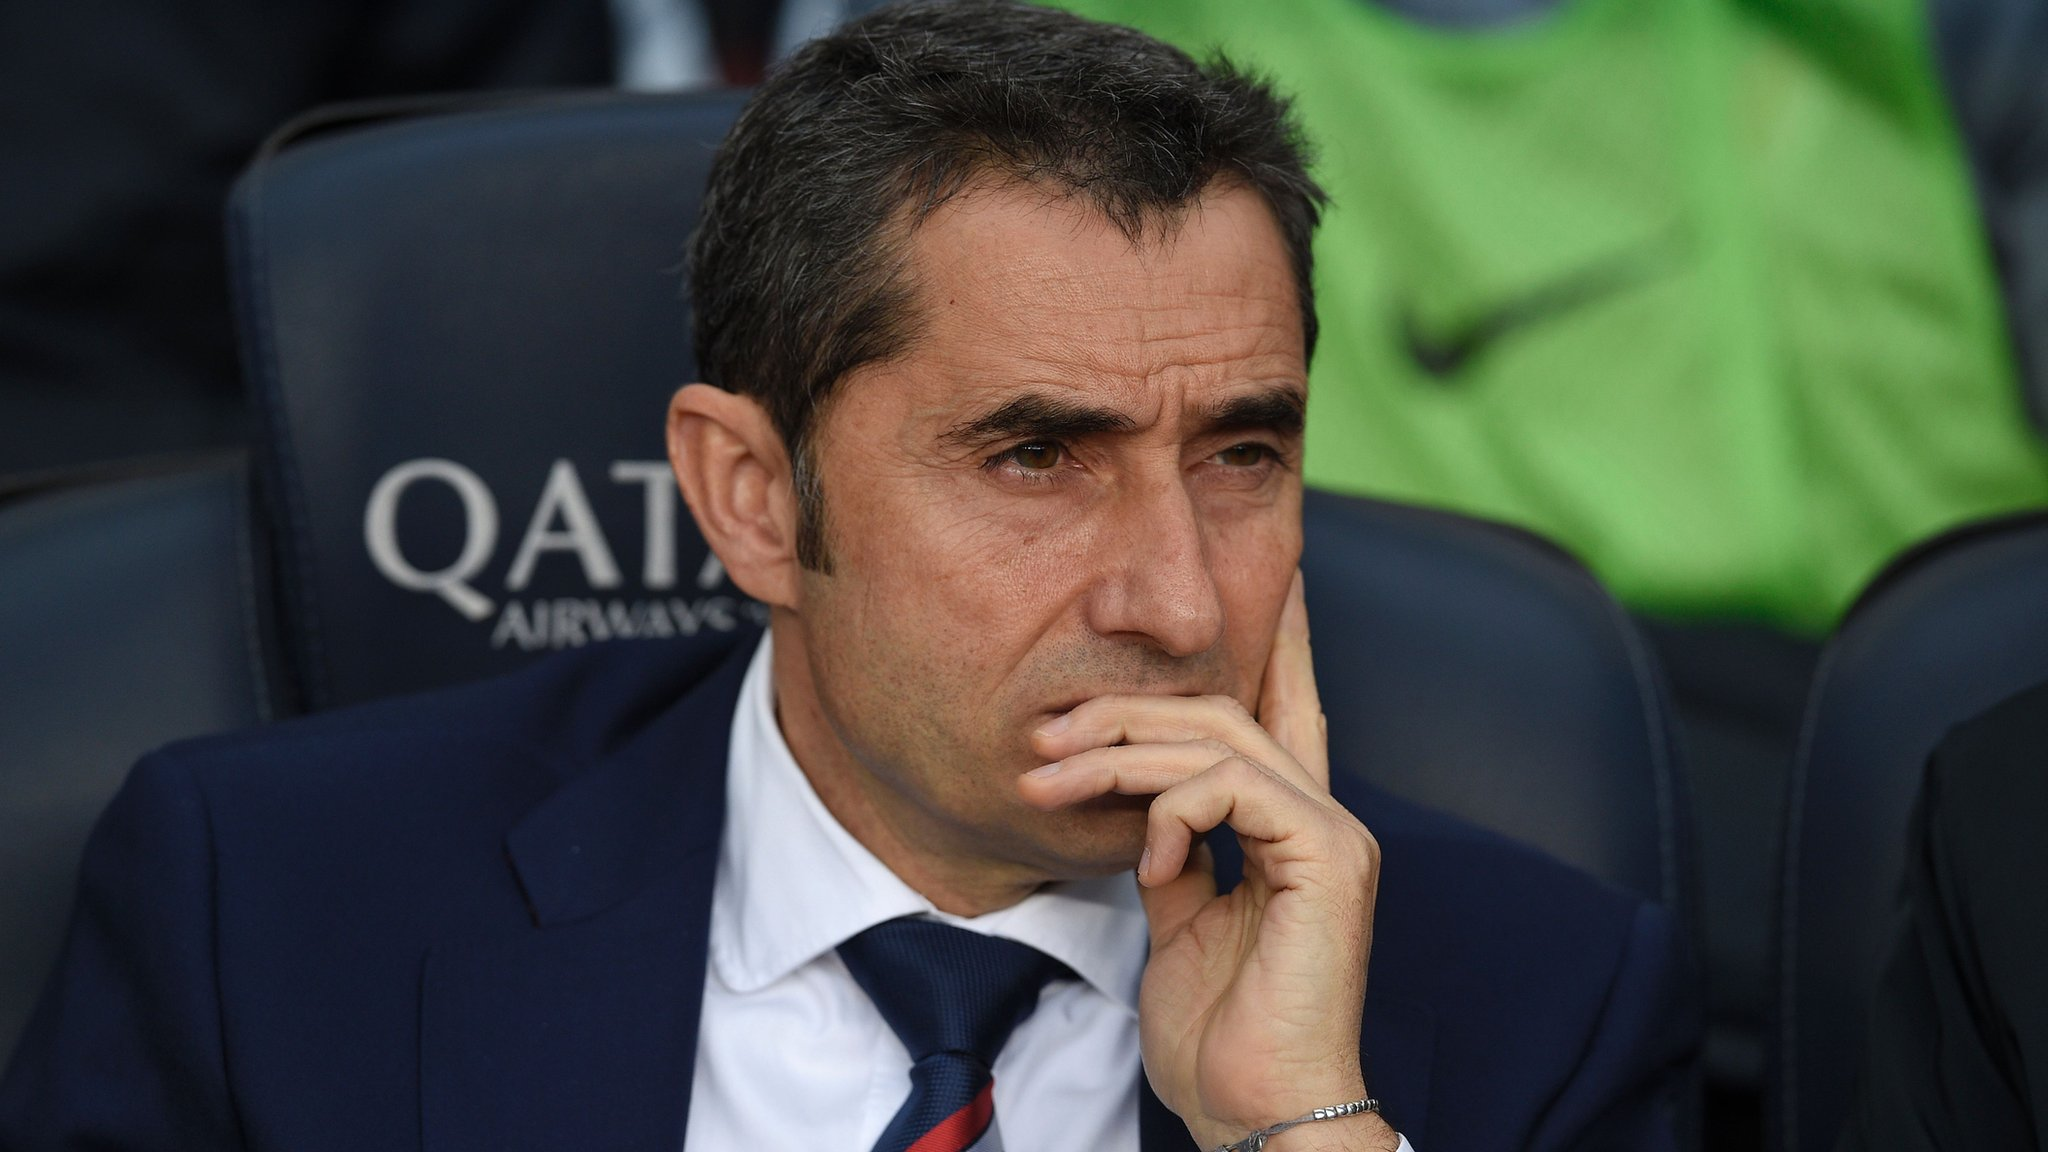 Barcelona: Ernesto Valverde replaces Luis Enrique as manager